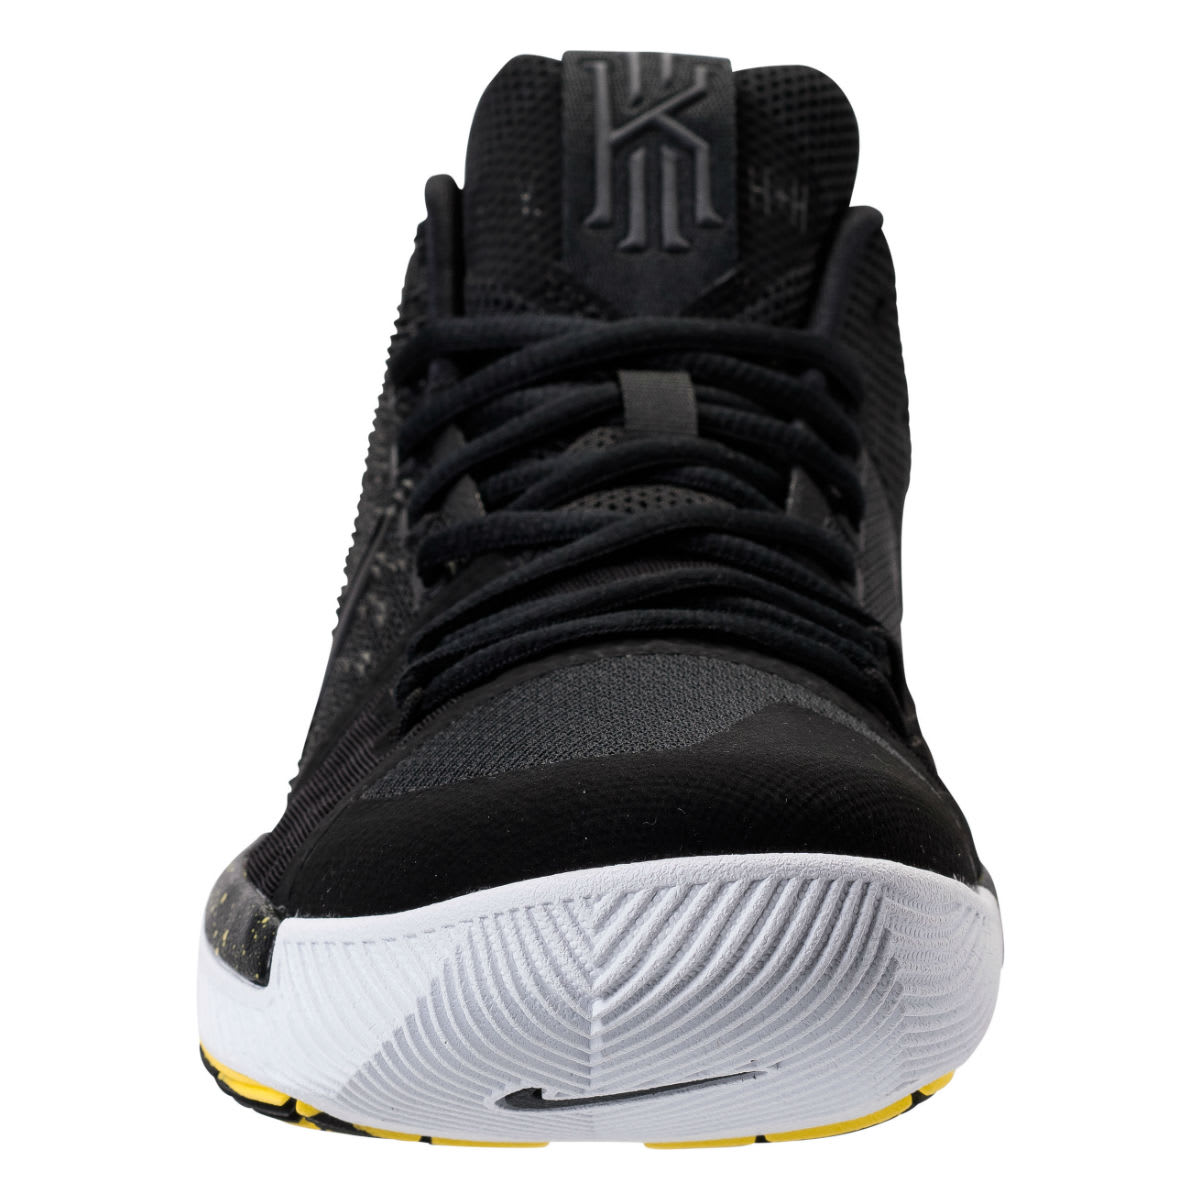 f9999e31f3ca ... new style nike kyrie 3 black yellow release date front 852395 901 01856  f28f9